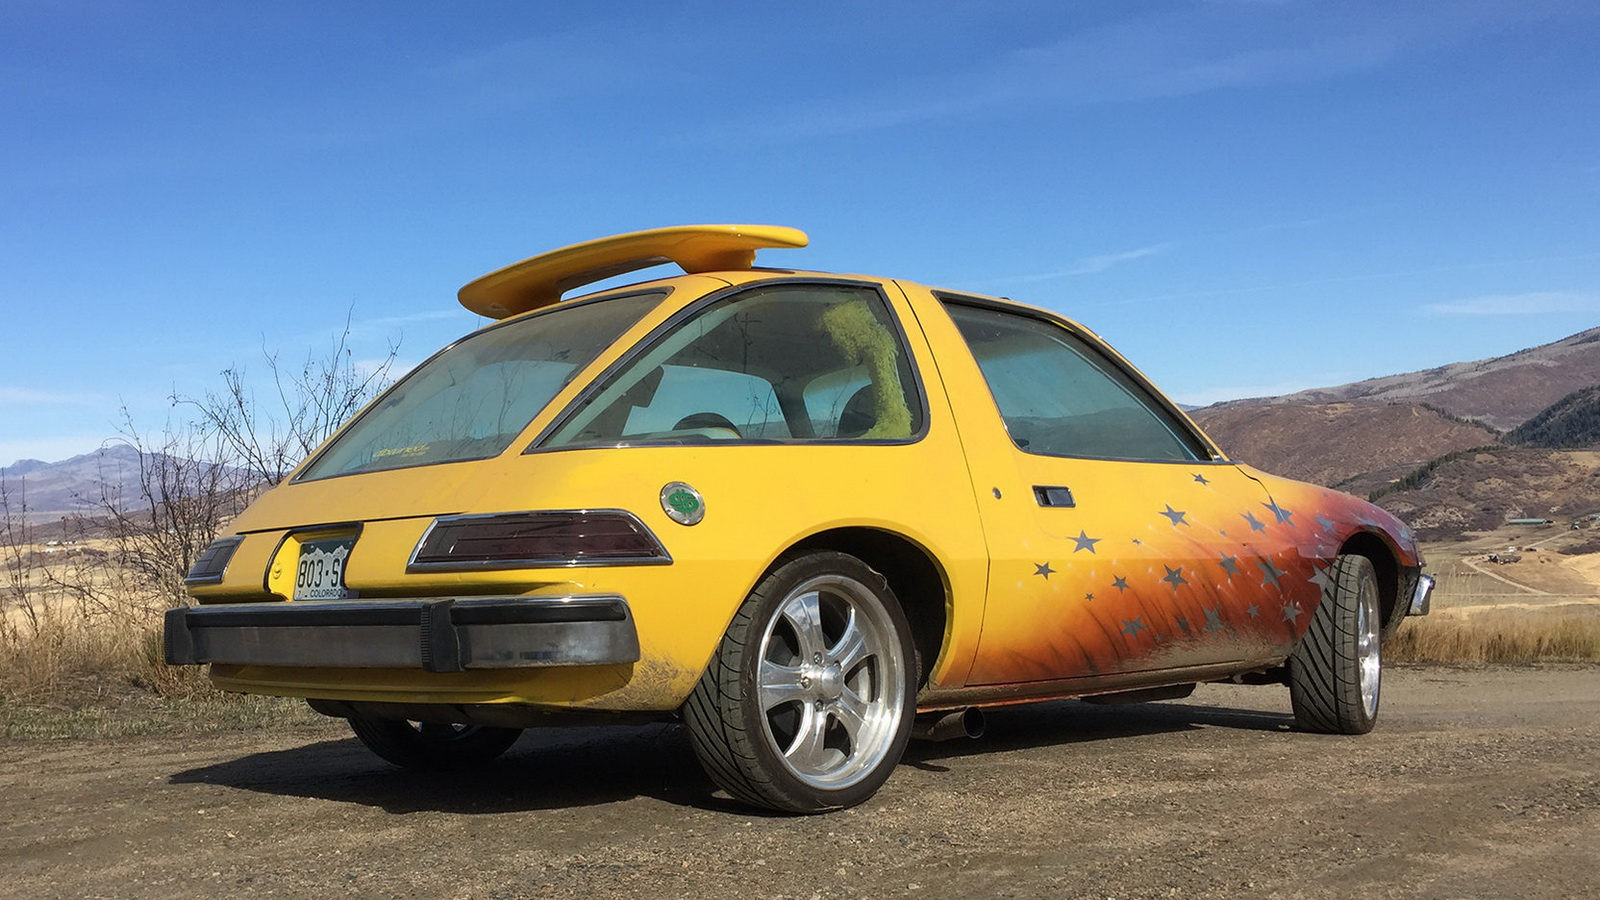 Denver Car Auction >> Craptastic AMC Pacer From Pimp My Ride Is Up For Sale